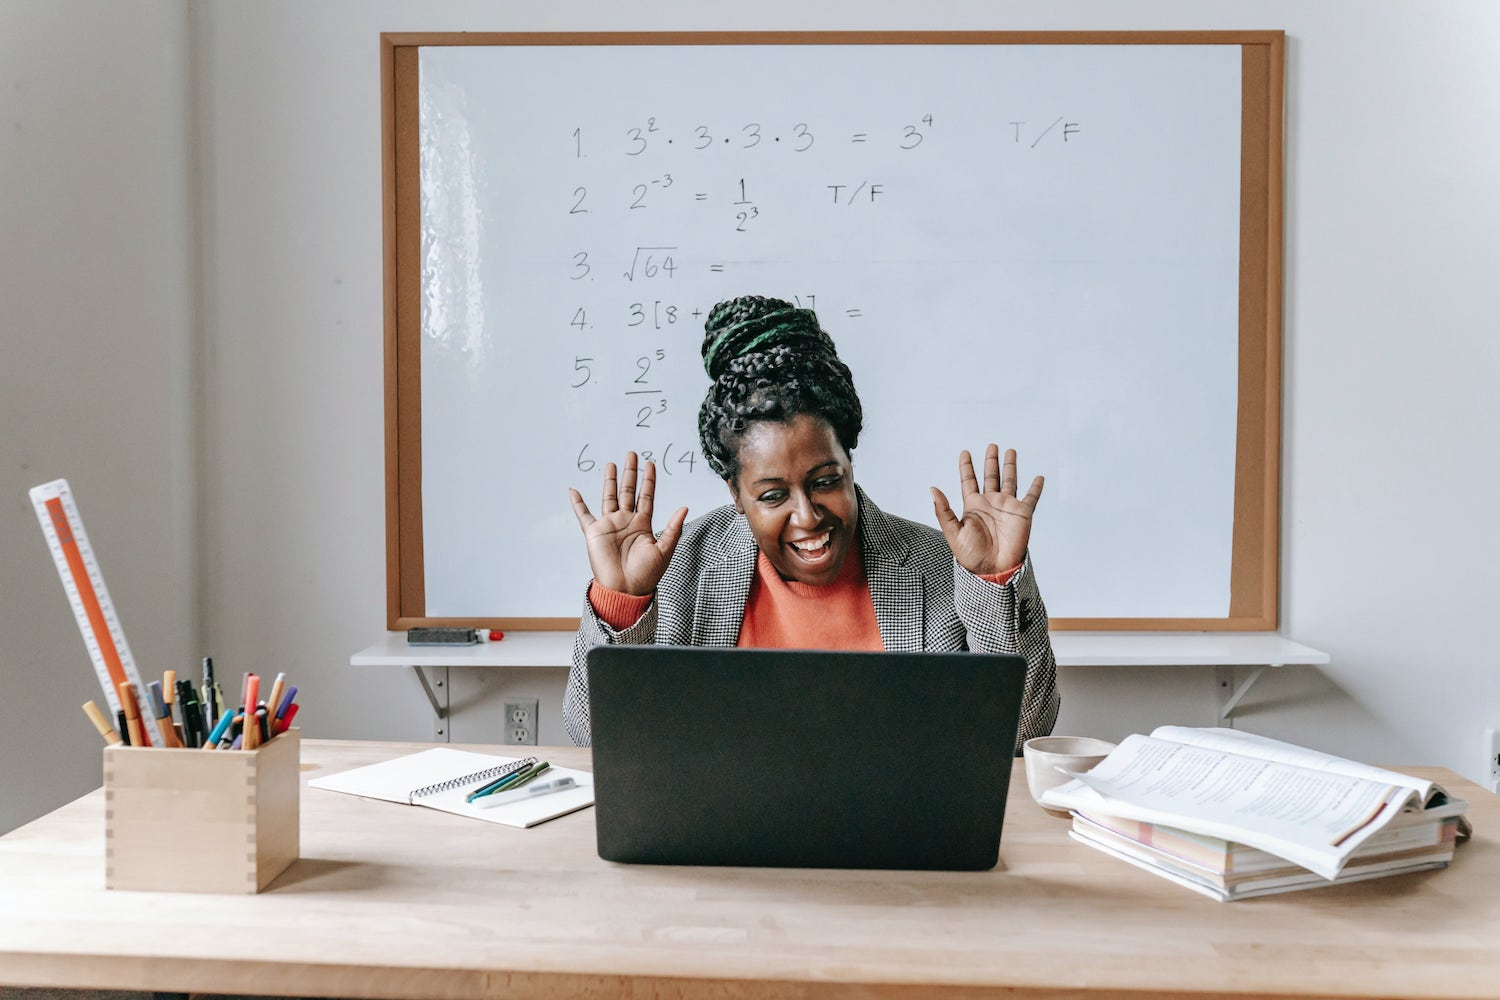 A woman on a video call with a whiteboard full of equations behind her